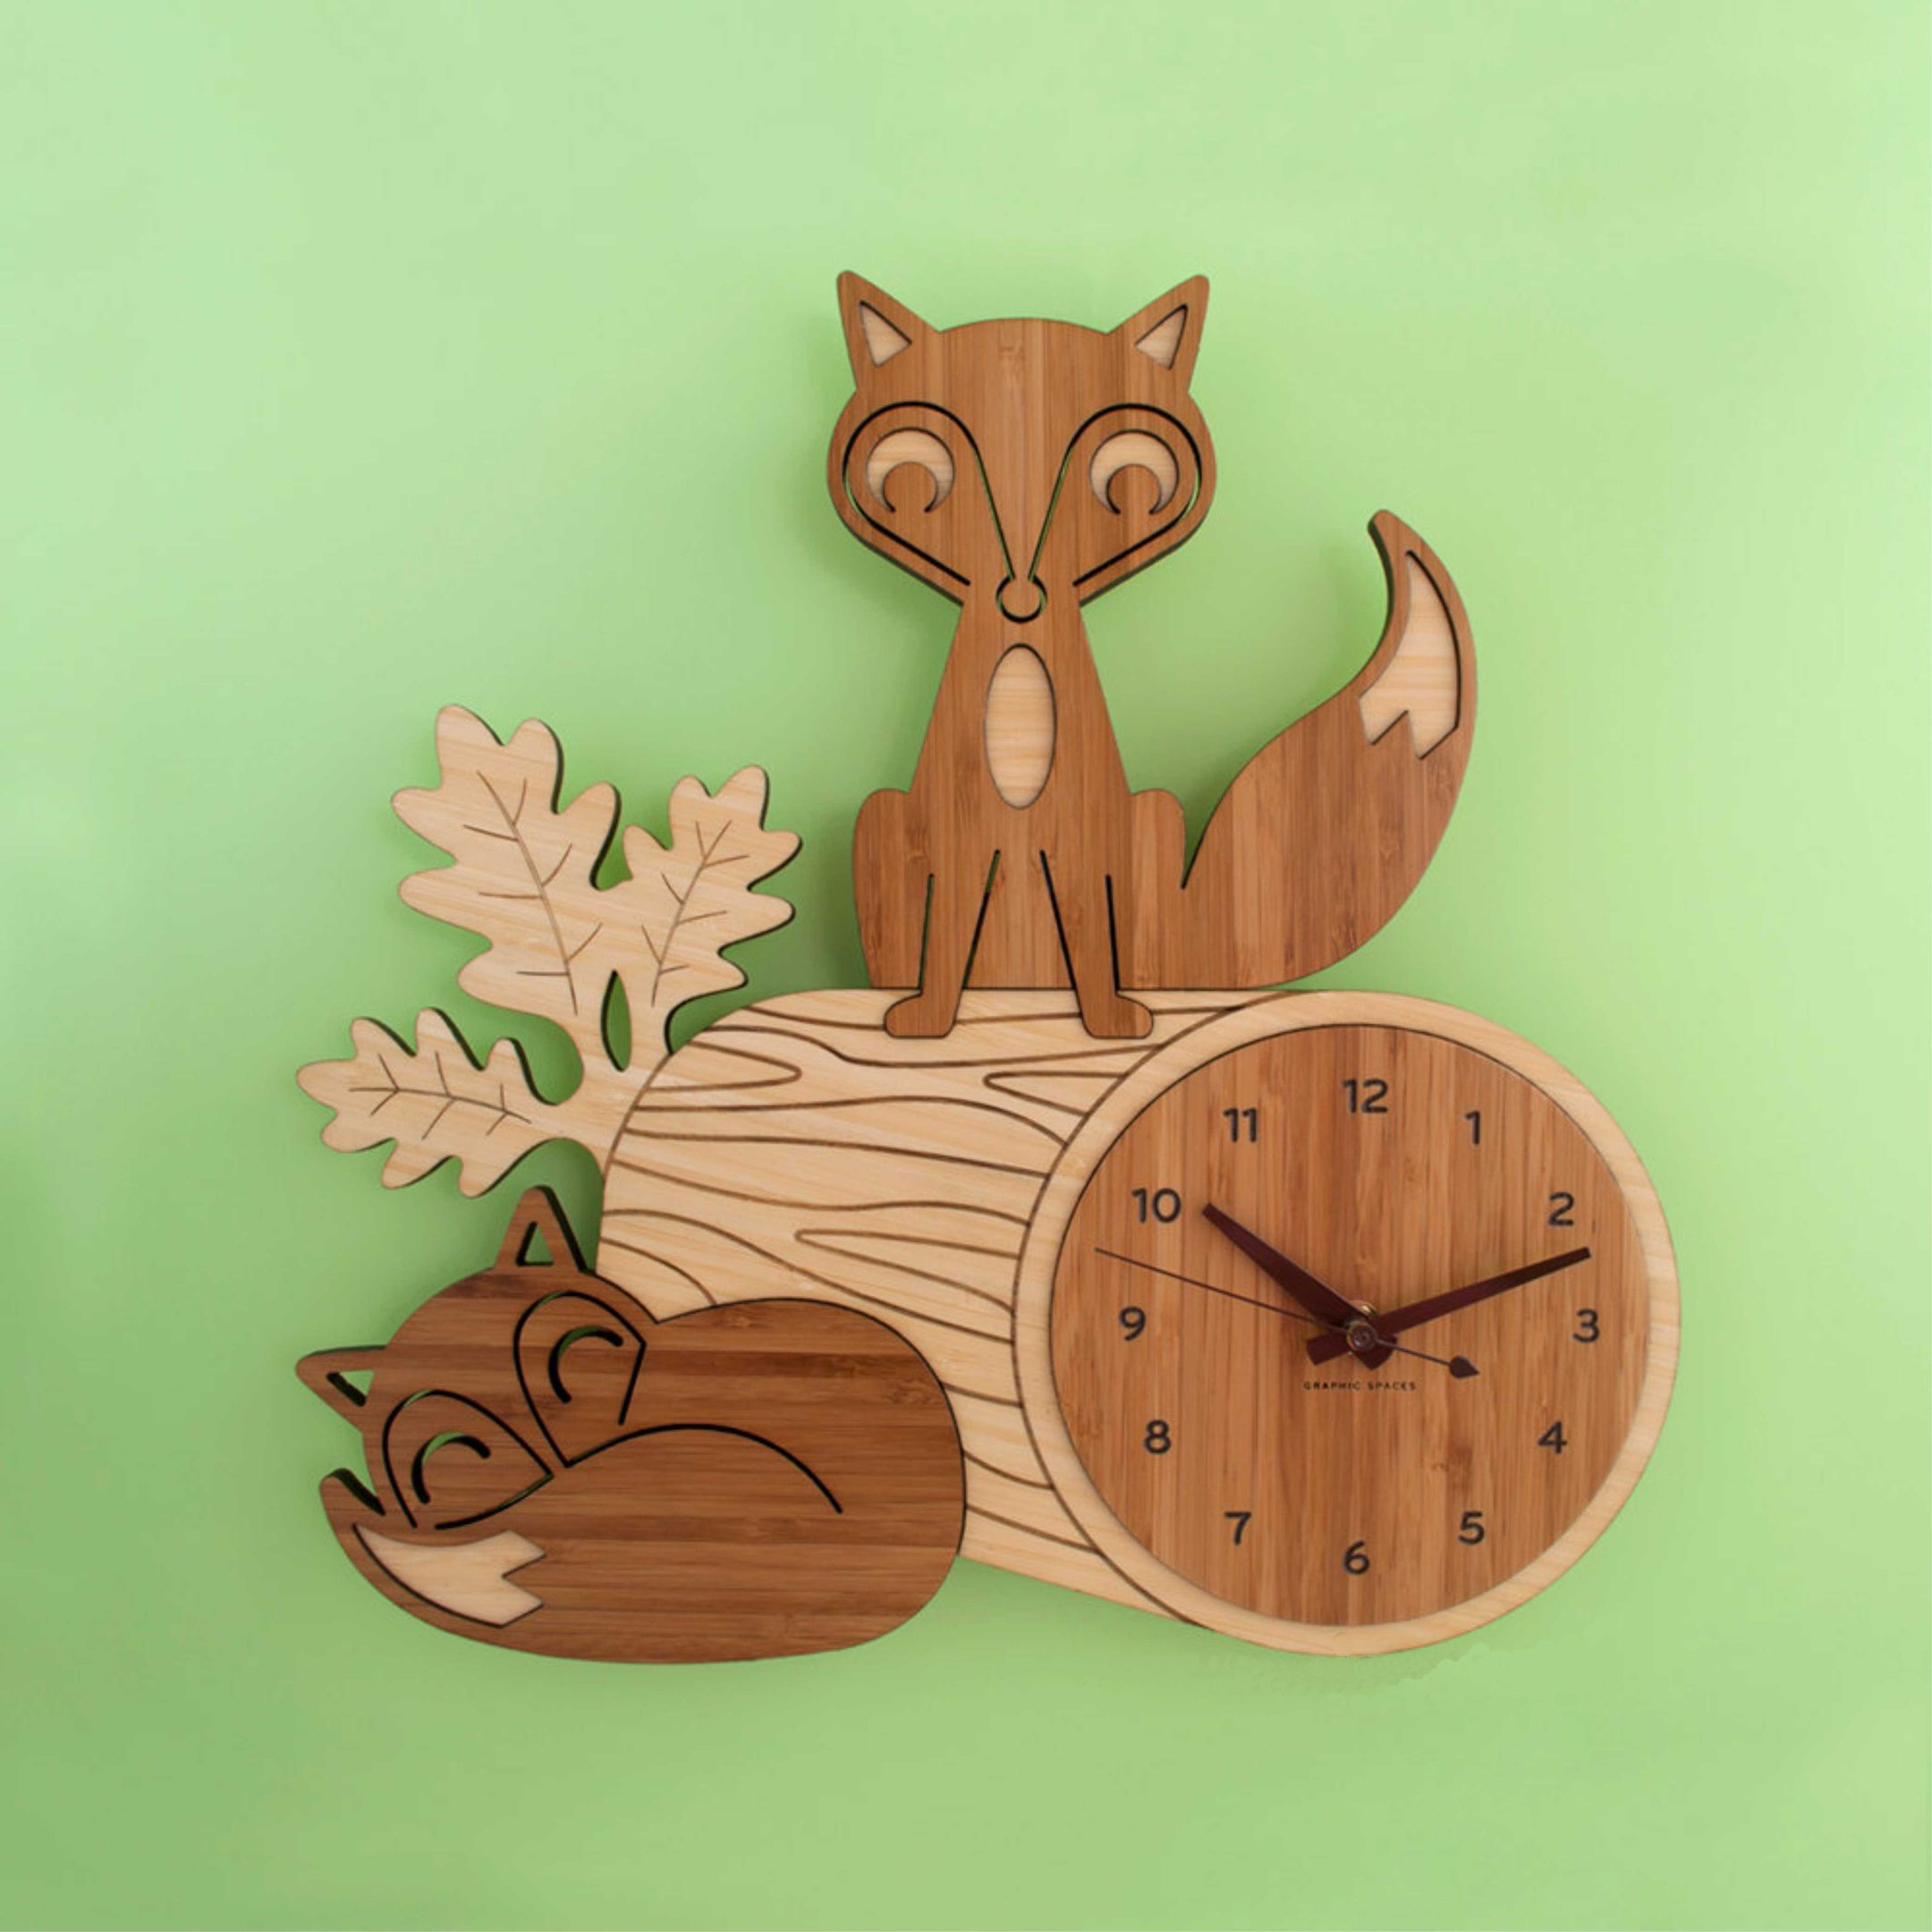 Laser Cut Clock With Fox Free Vector Cdr Download 3axis Co